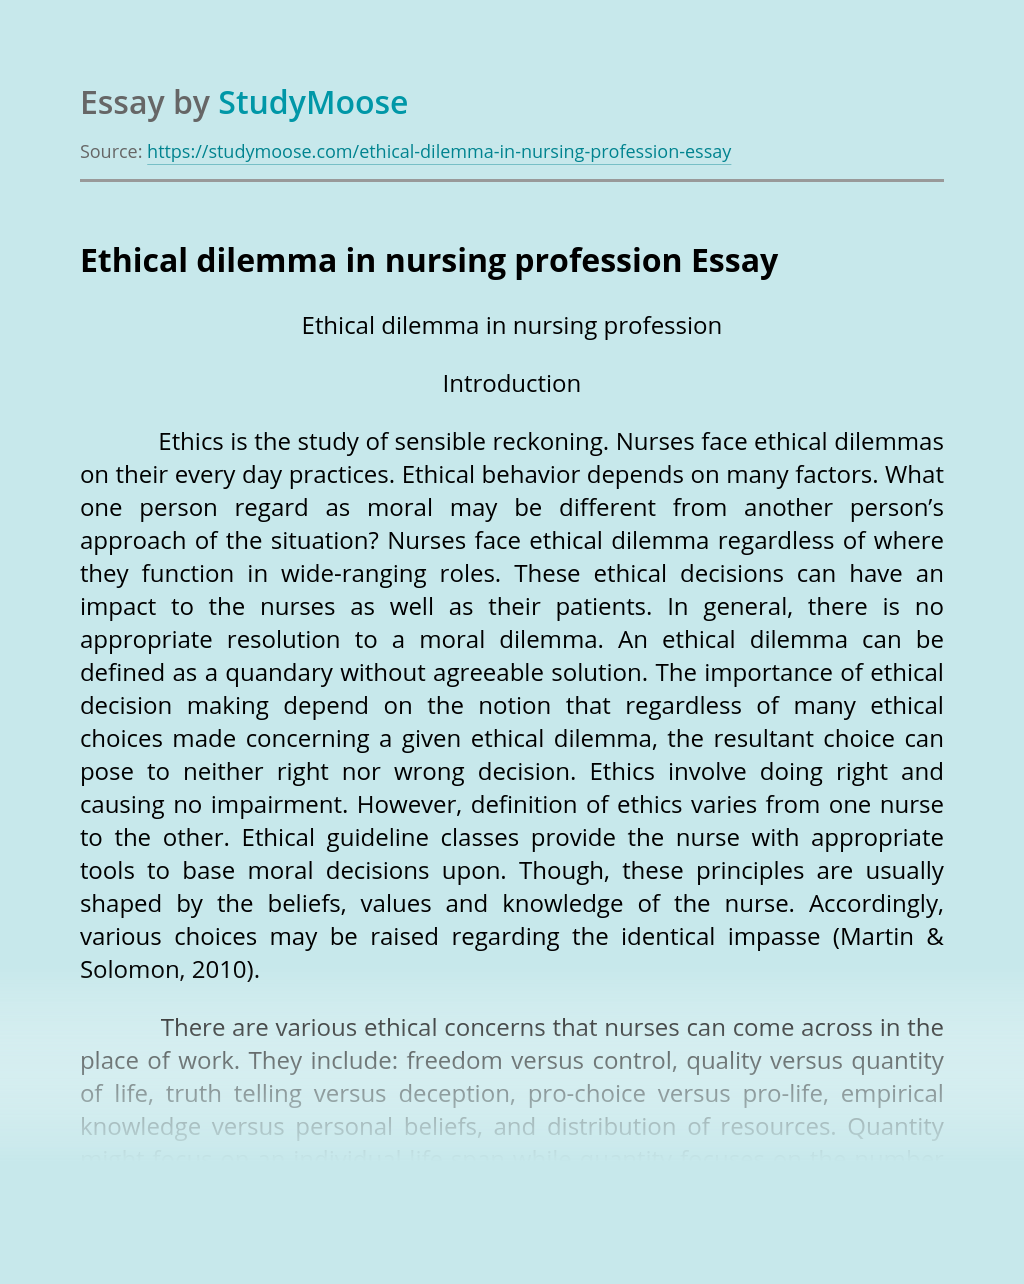 Ethical dilemma in nursing profession